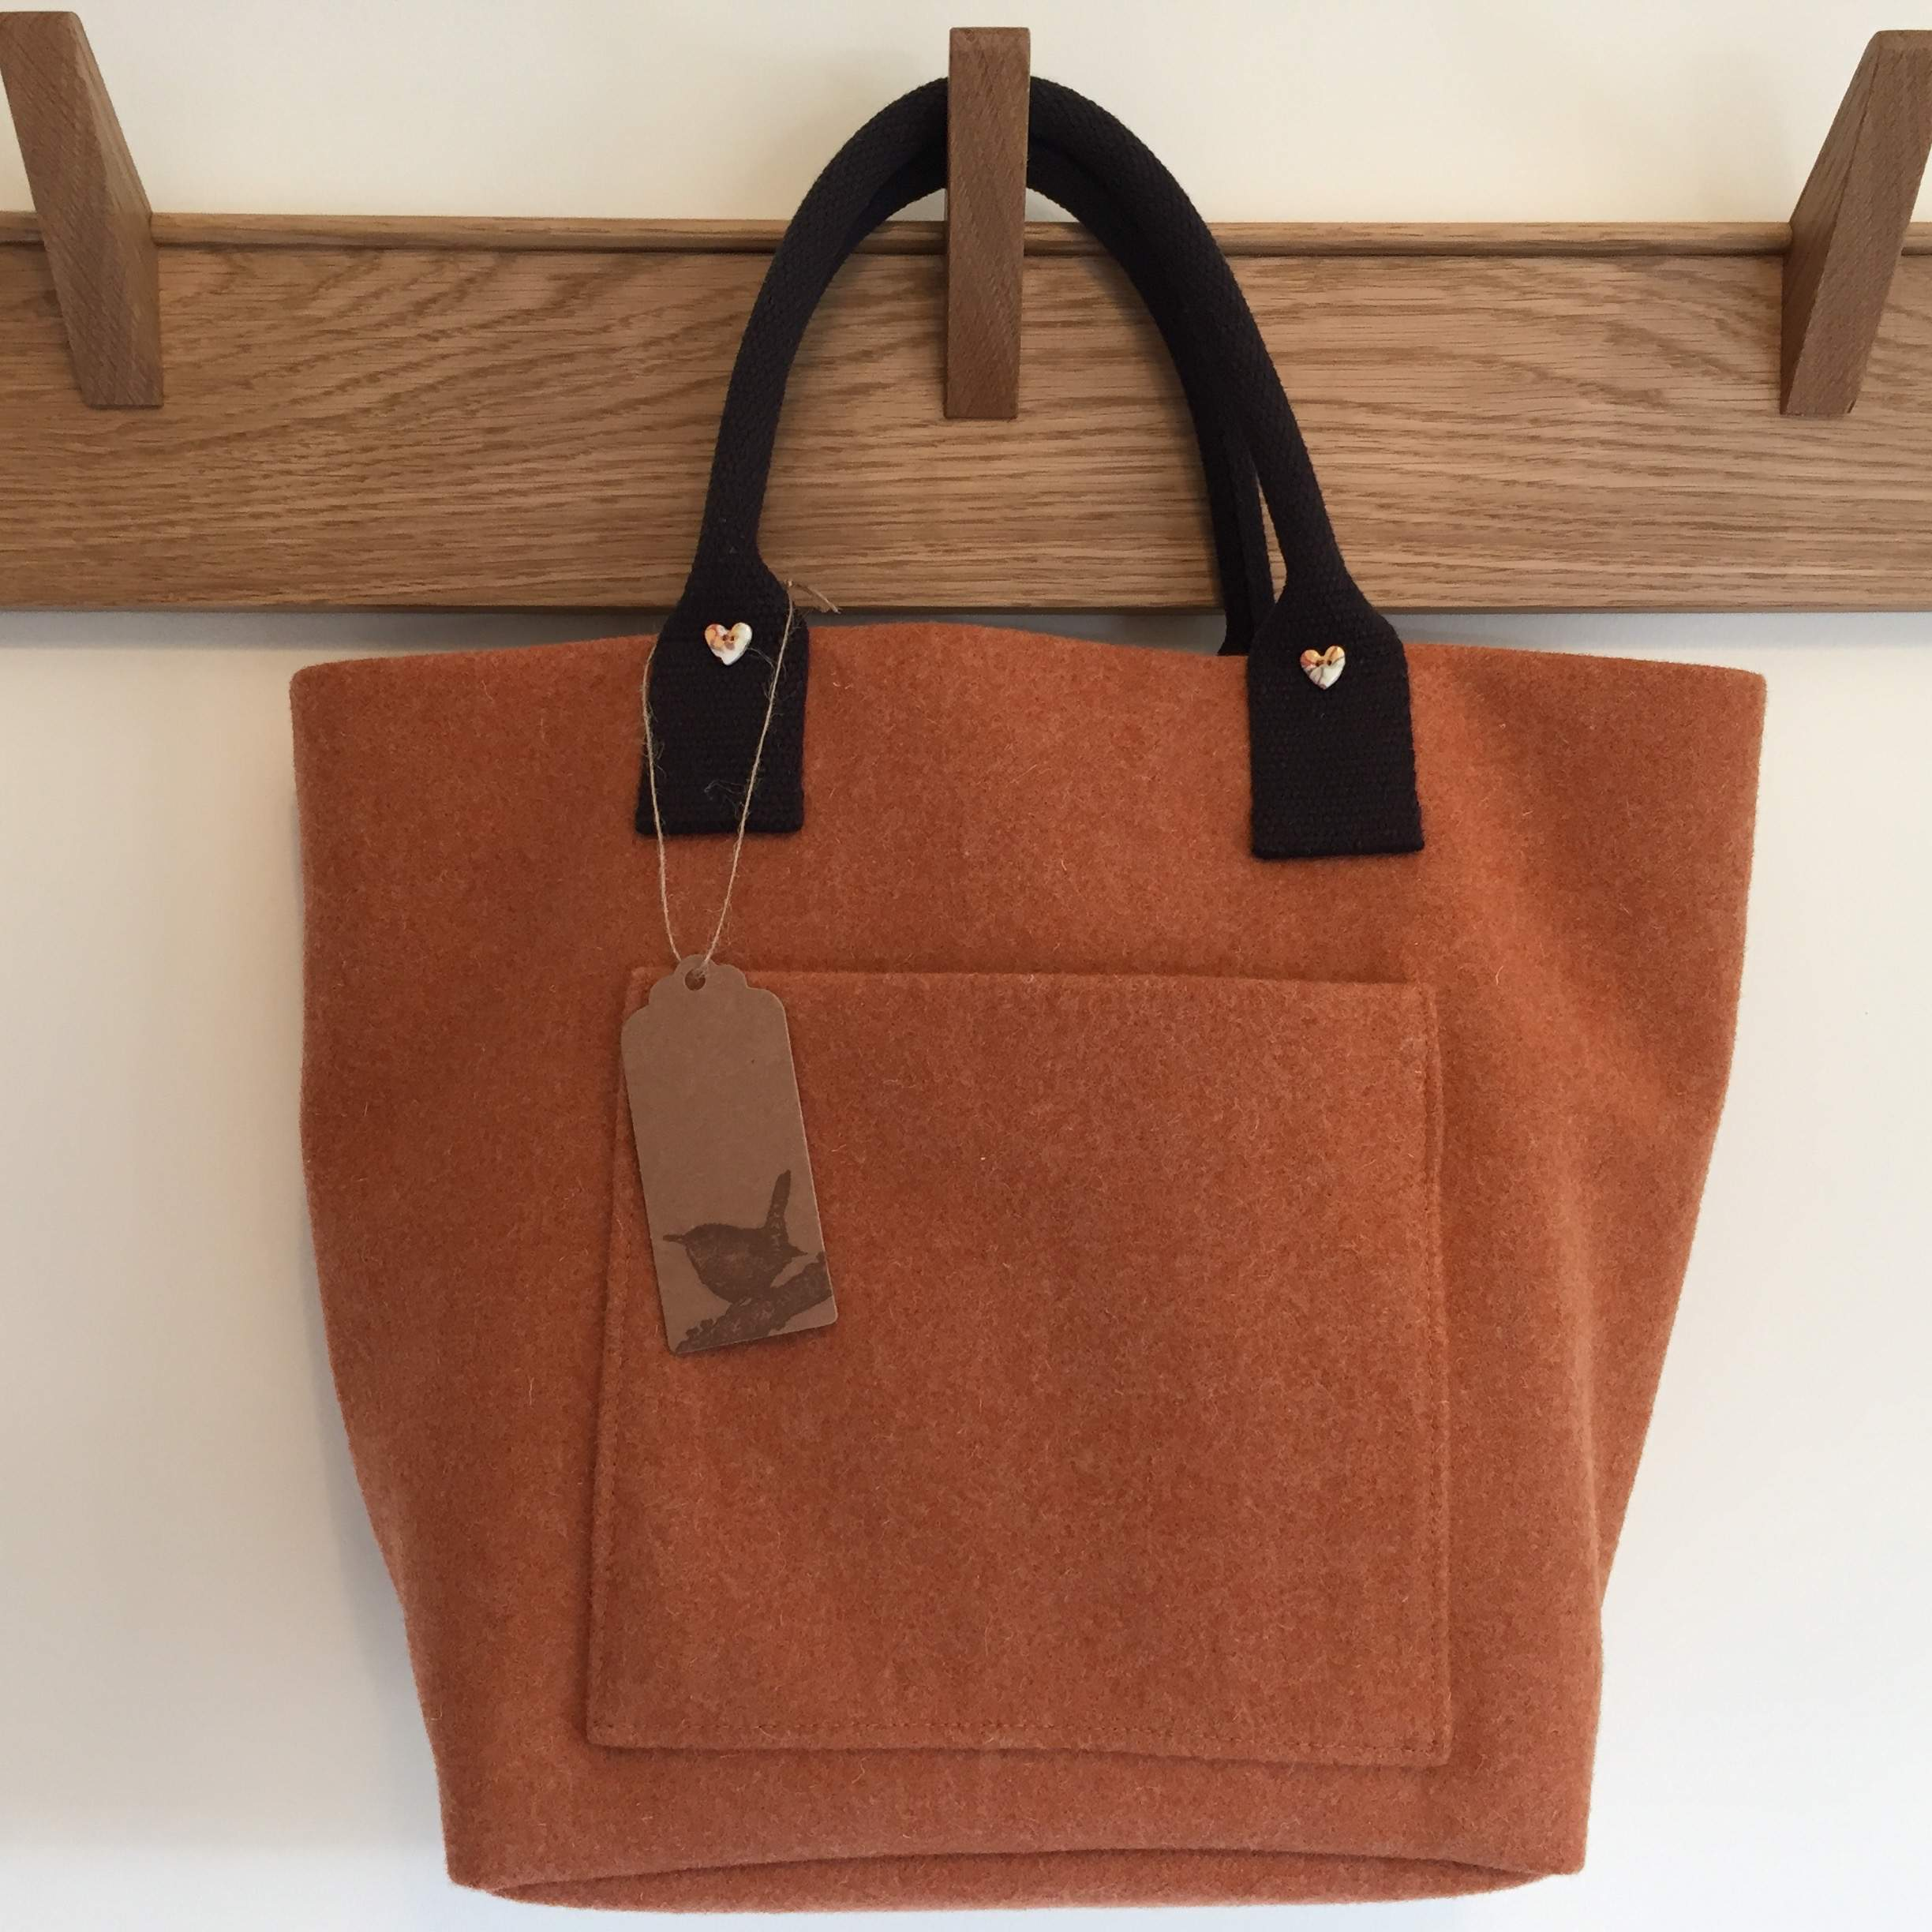 Wool Tote in Burnt Orange with Front Pocket